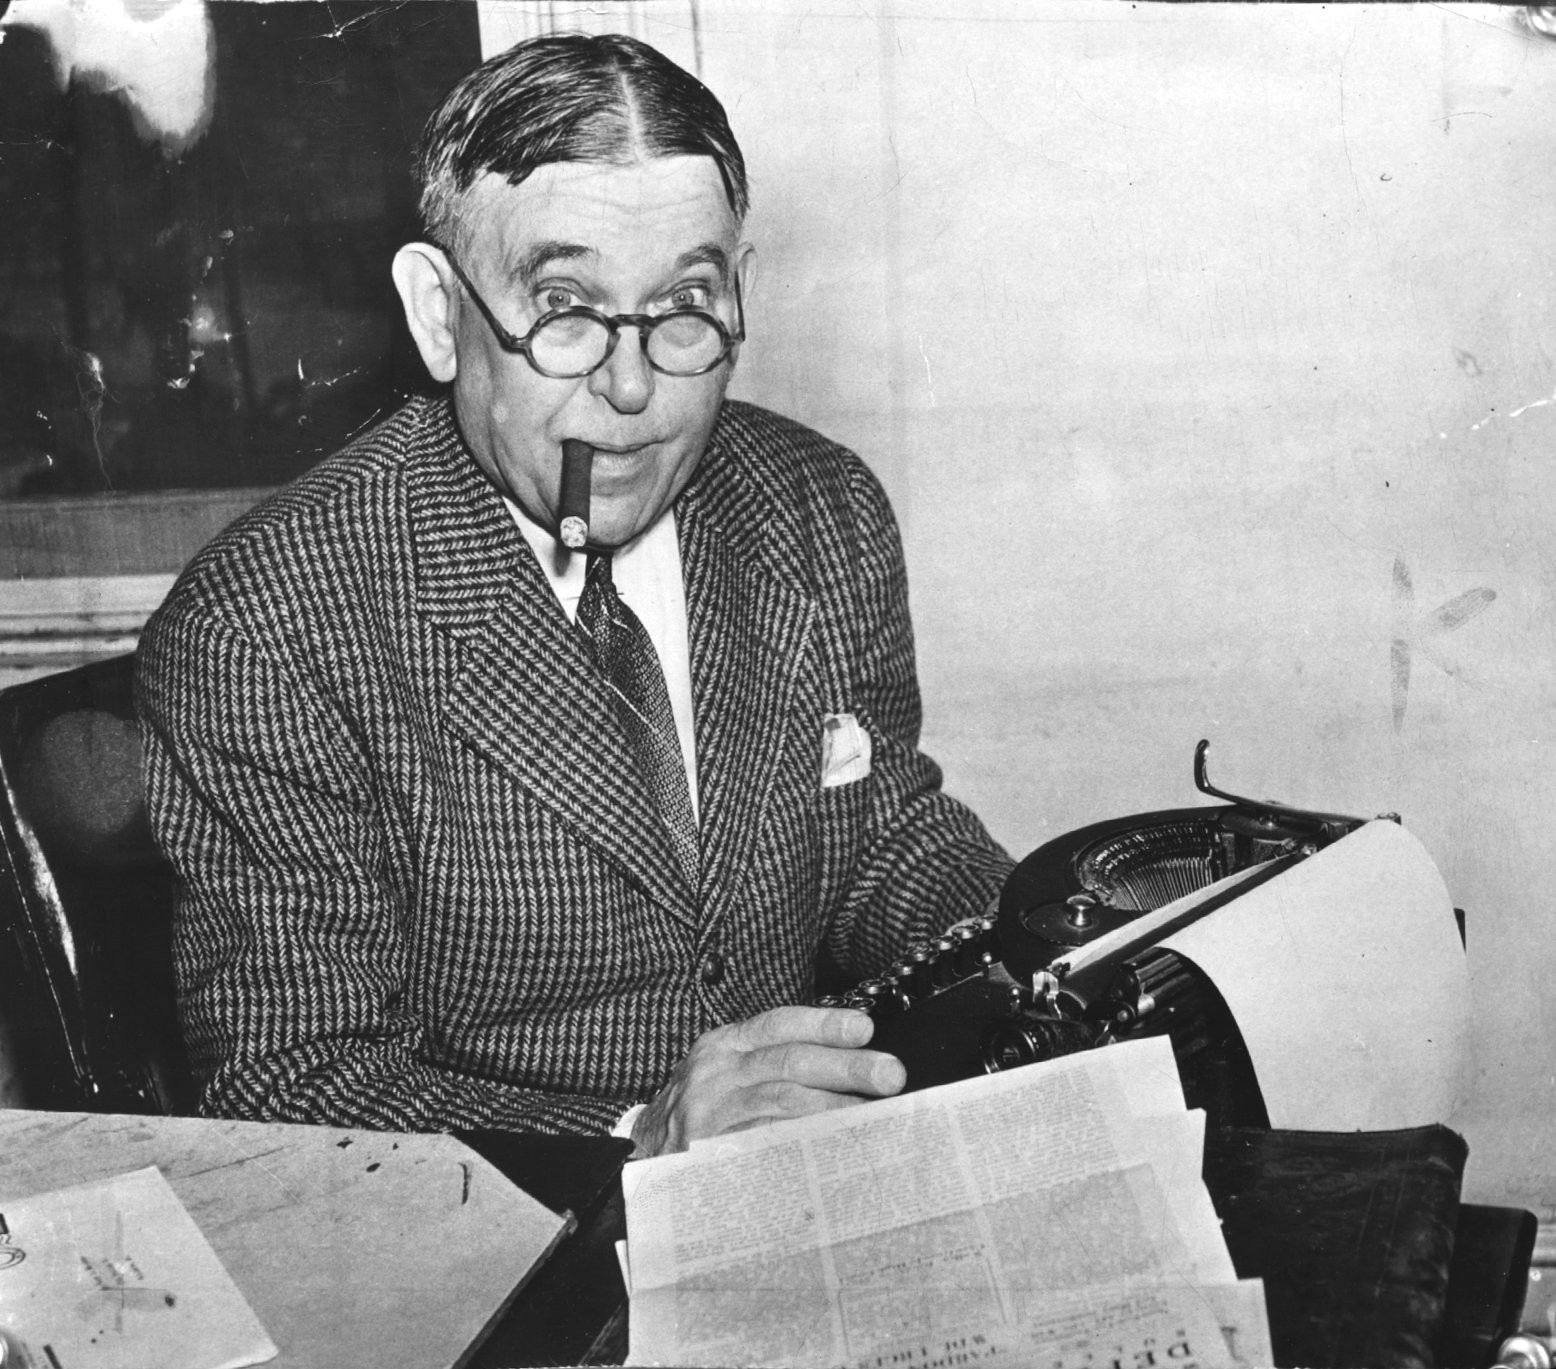 """I believe that it is better to tell the truth than a lie. I believe it is better to be free than to be a slave. And I believe it is better to know than to be ignorant."" - H. L. Mencken"